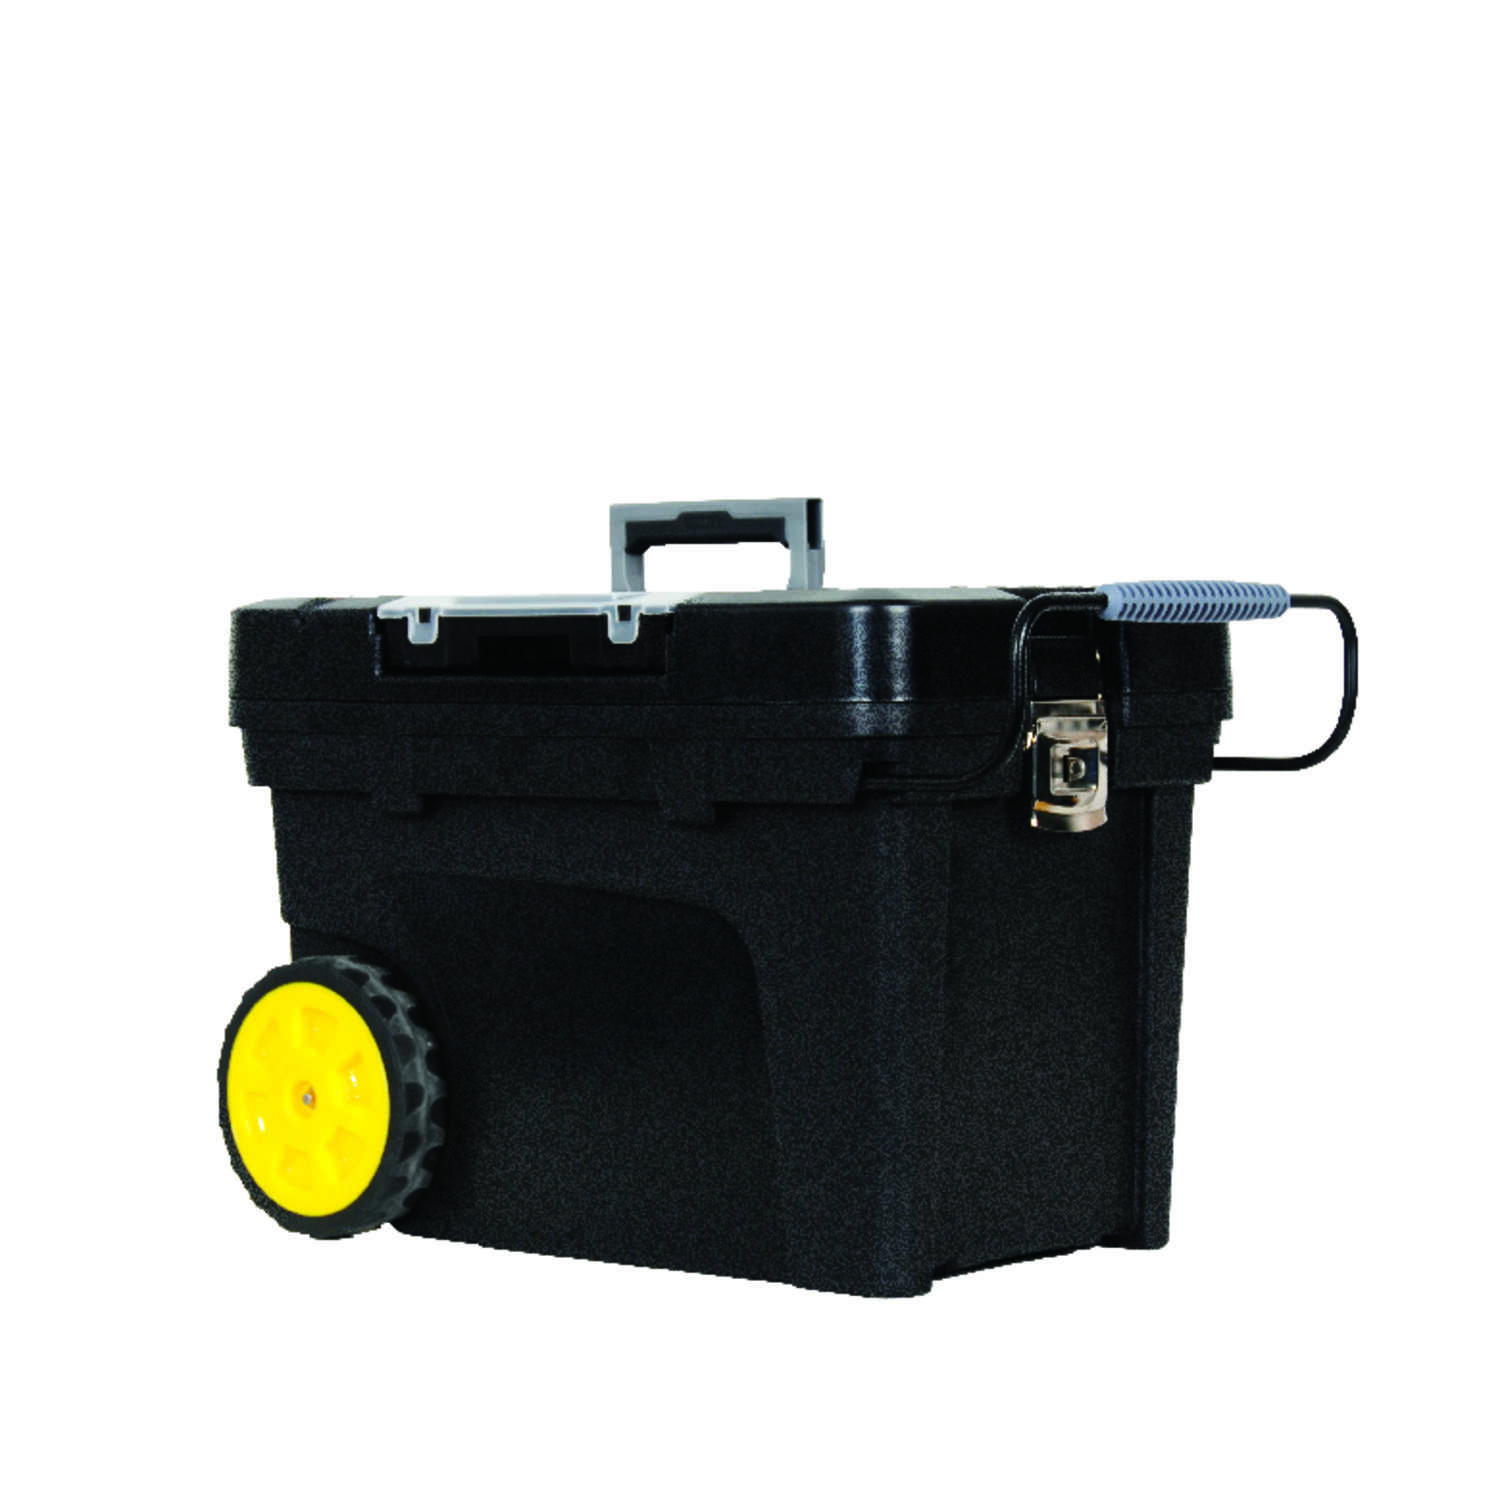 Stanley  24 in. Resin  Tool Chest  29.64 in. W x 19.3 in. H Wheeled Black